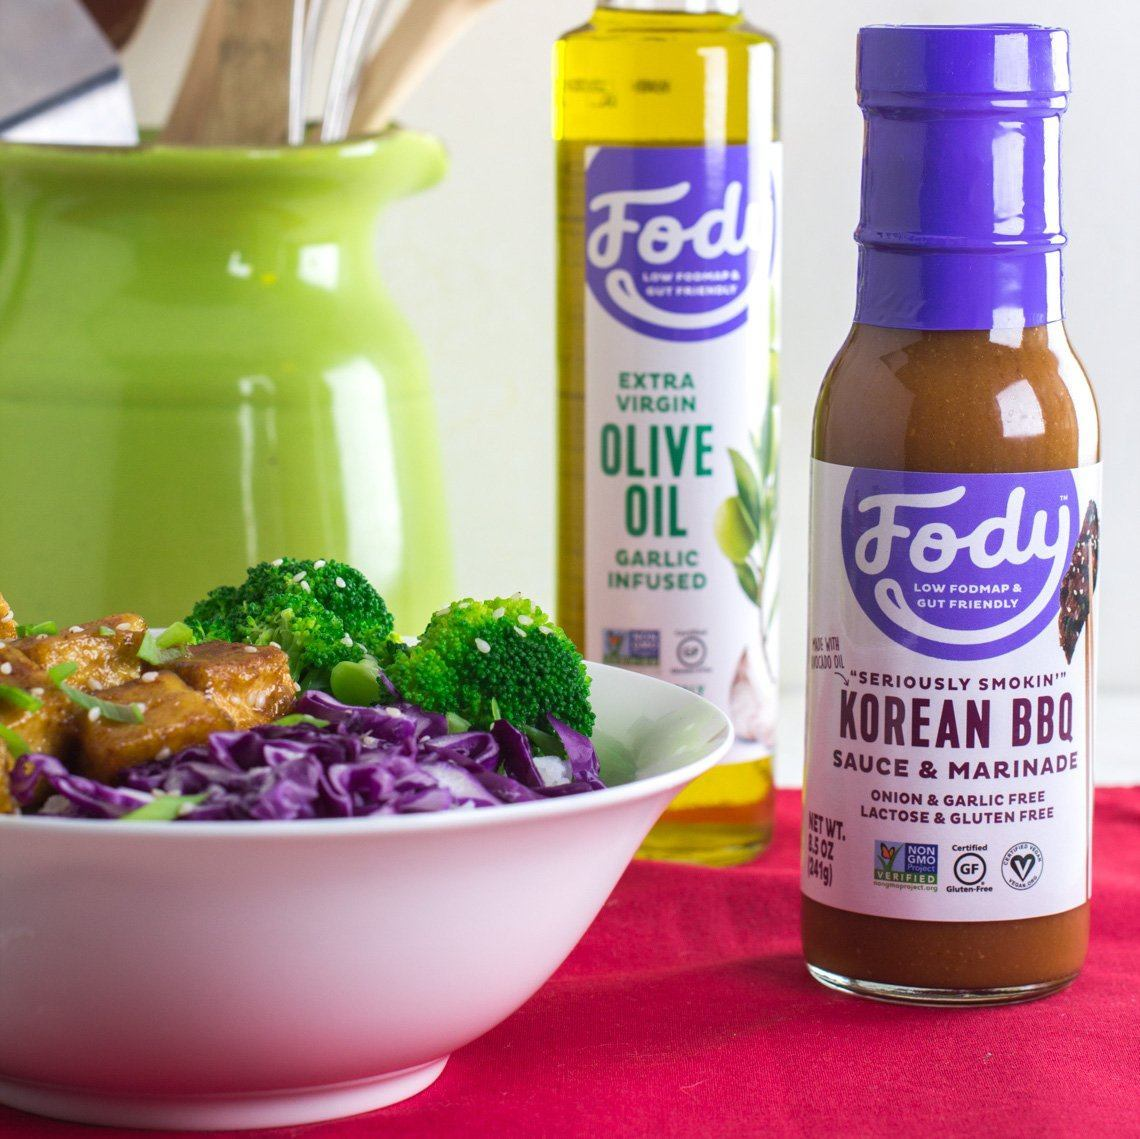 Low FODMAP <br><b><big>Korean BBQ <br>Sauce & Marinade </big></b><br><small>No Onion, No Garlic, Lactose & Gluten-Free!</small>